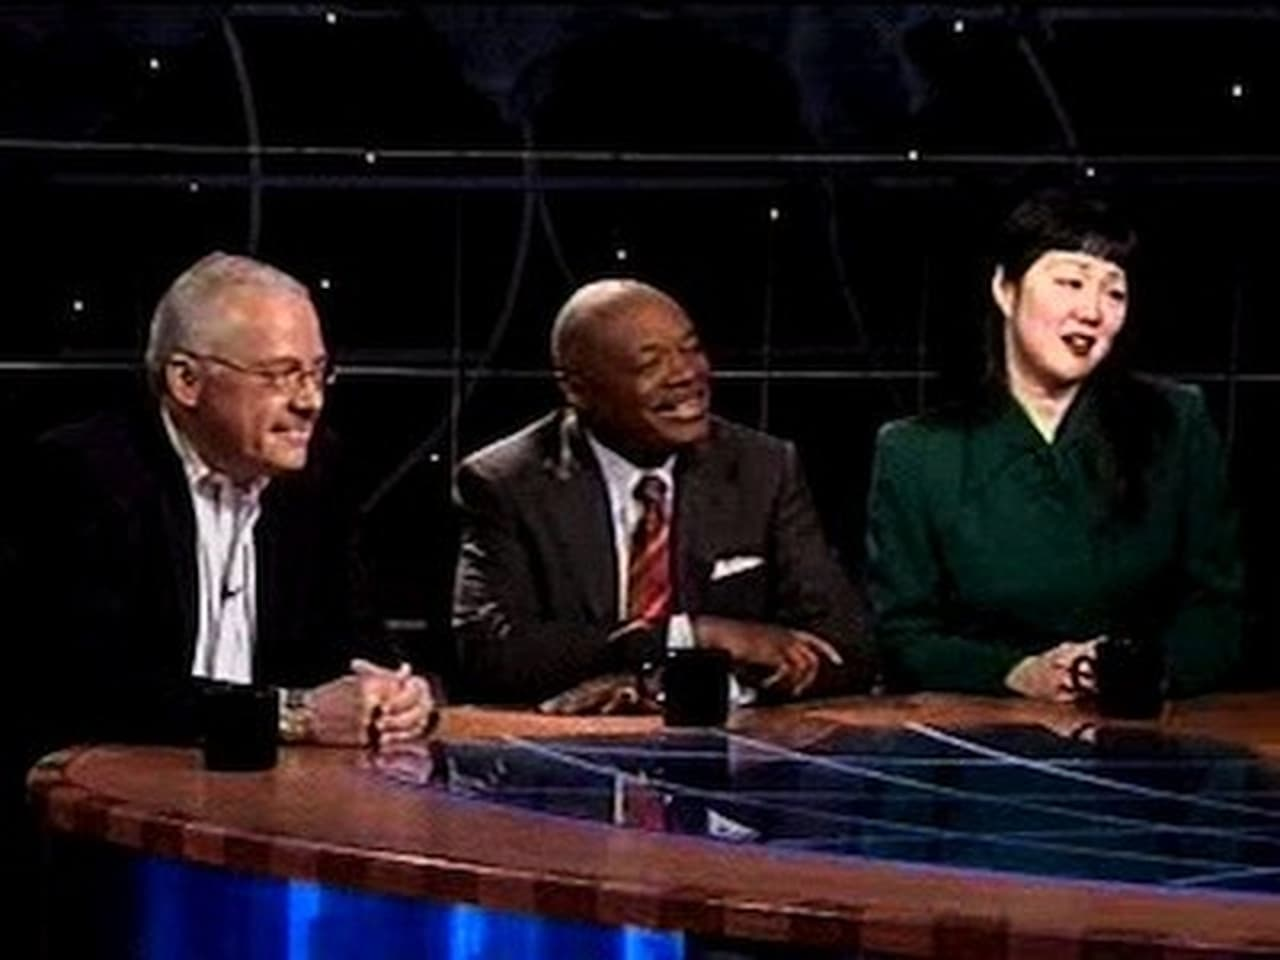 Real Time with Bill Maher - Season 1 Episode 15 : August 22, 2003